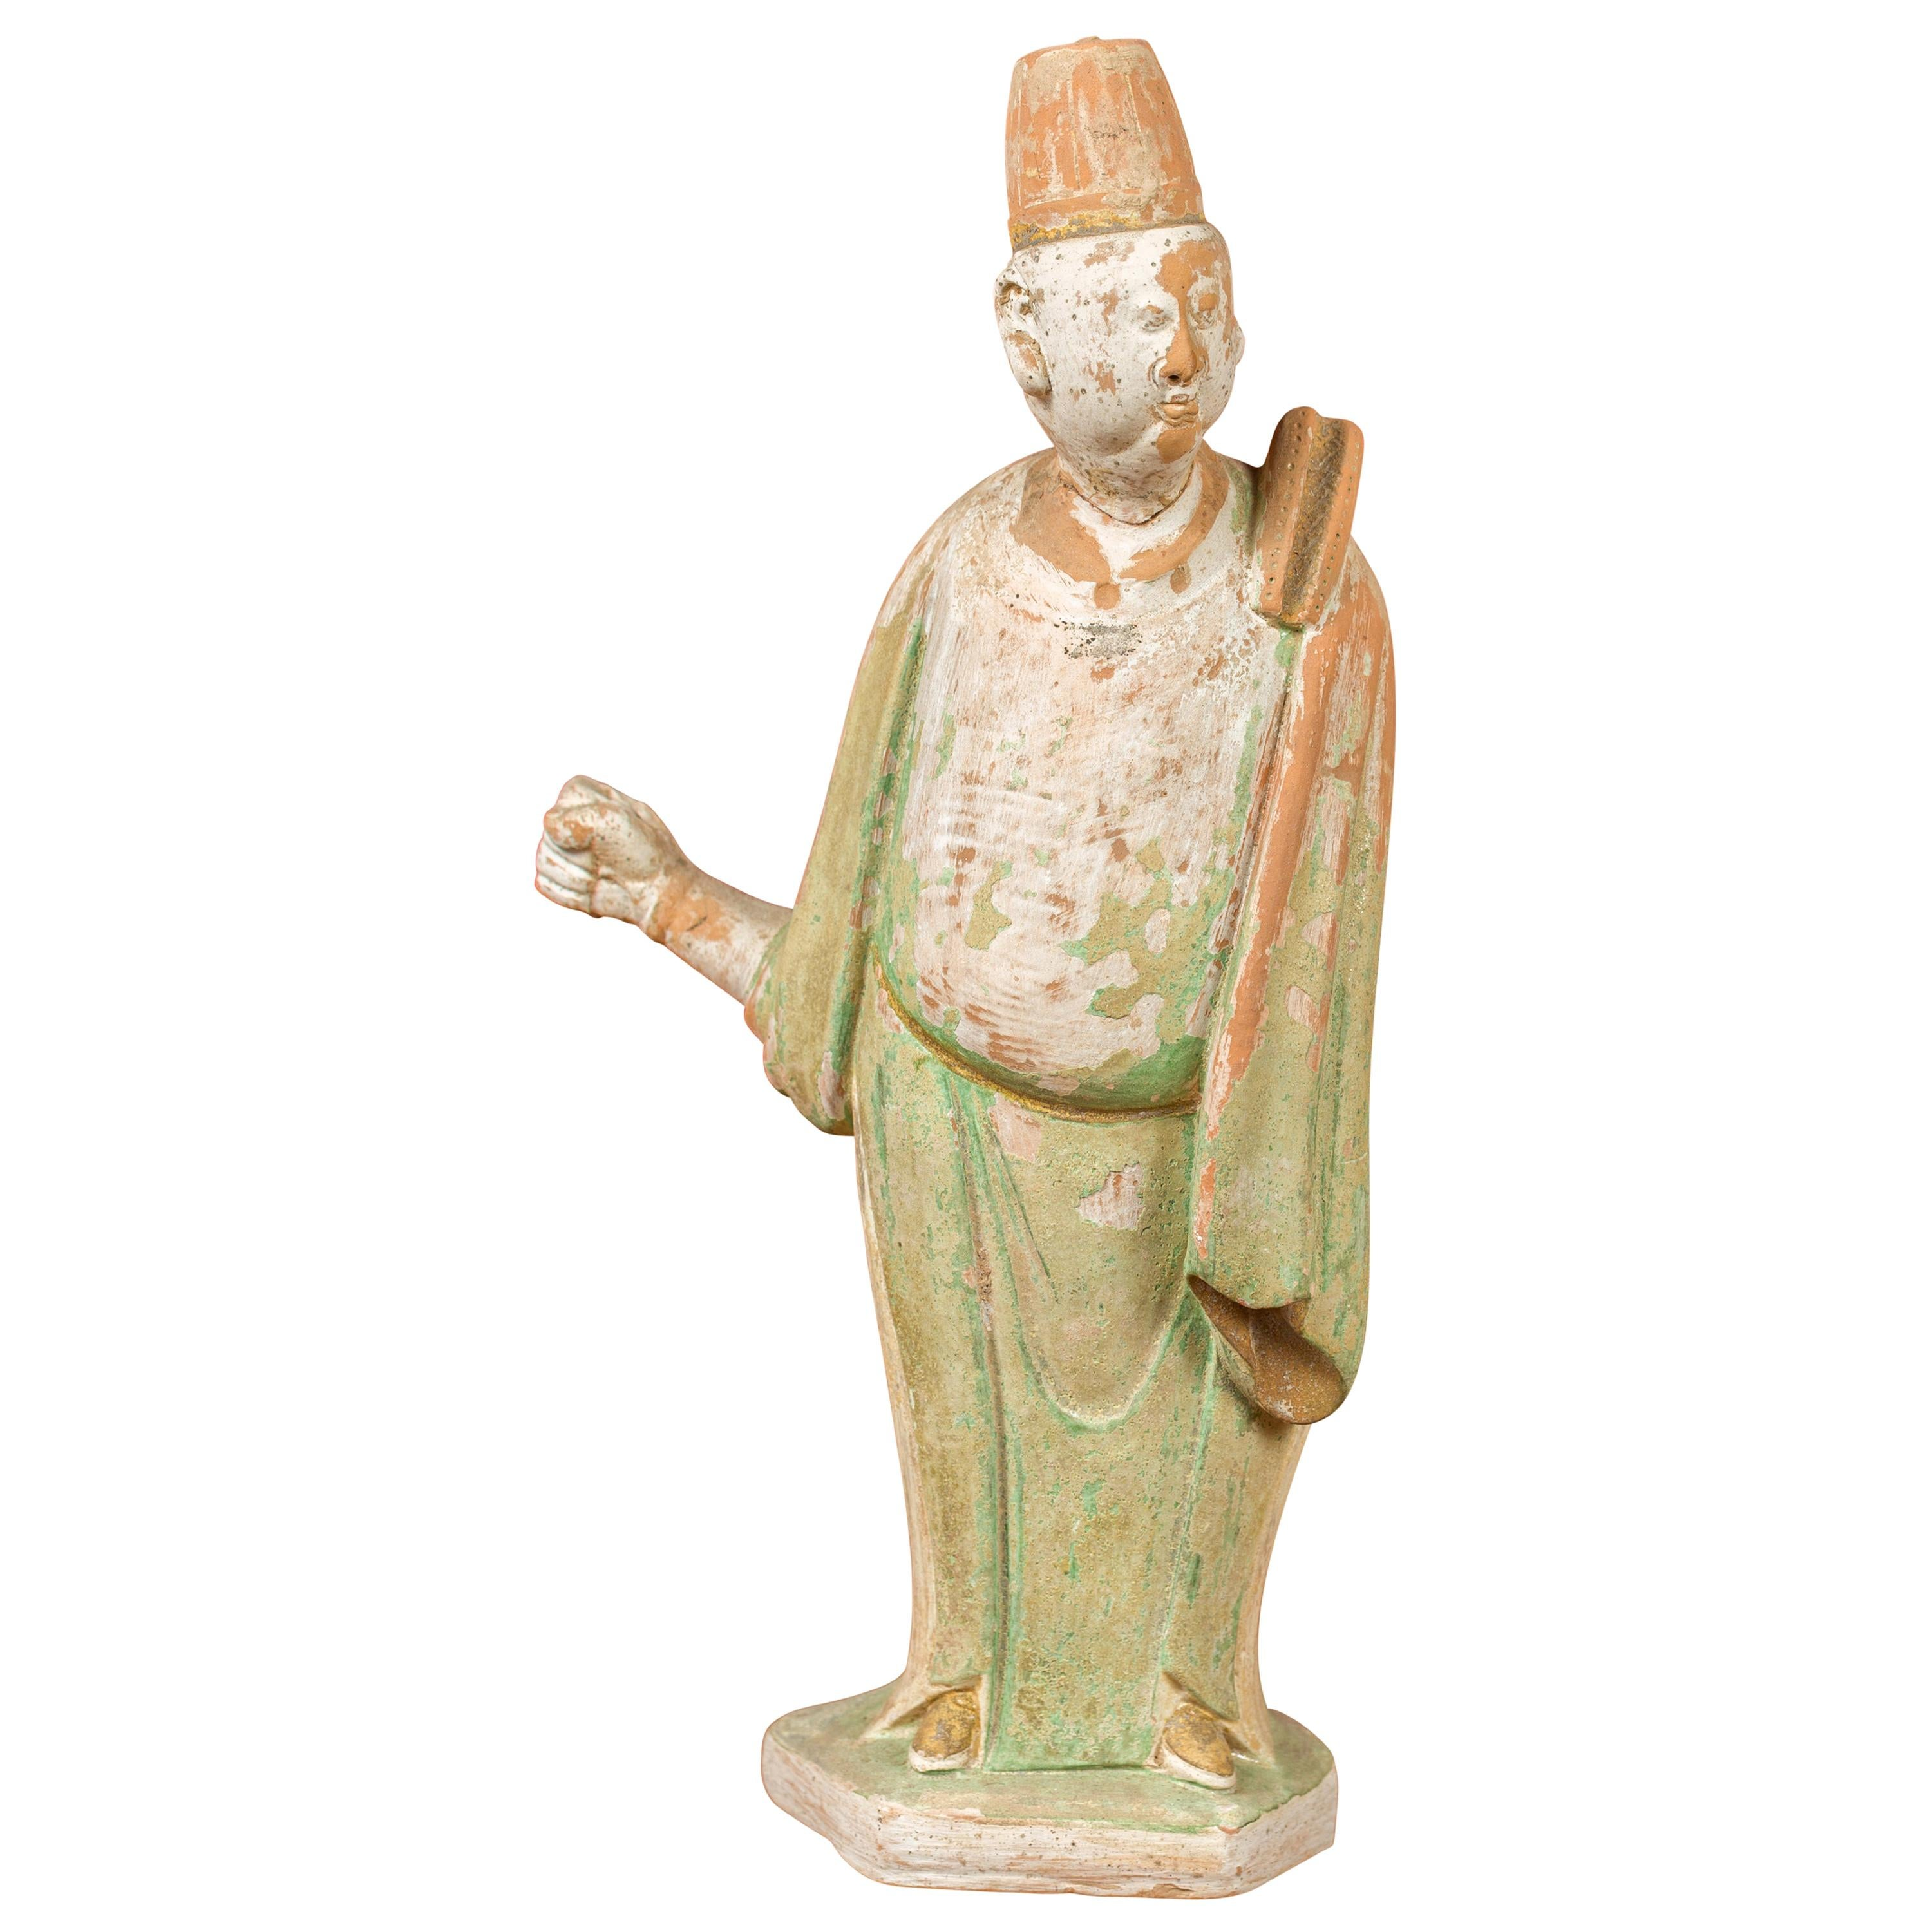 Chinese Ming Dynasty Terracotta Courtsman Statuette with Original Polychromy